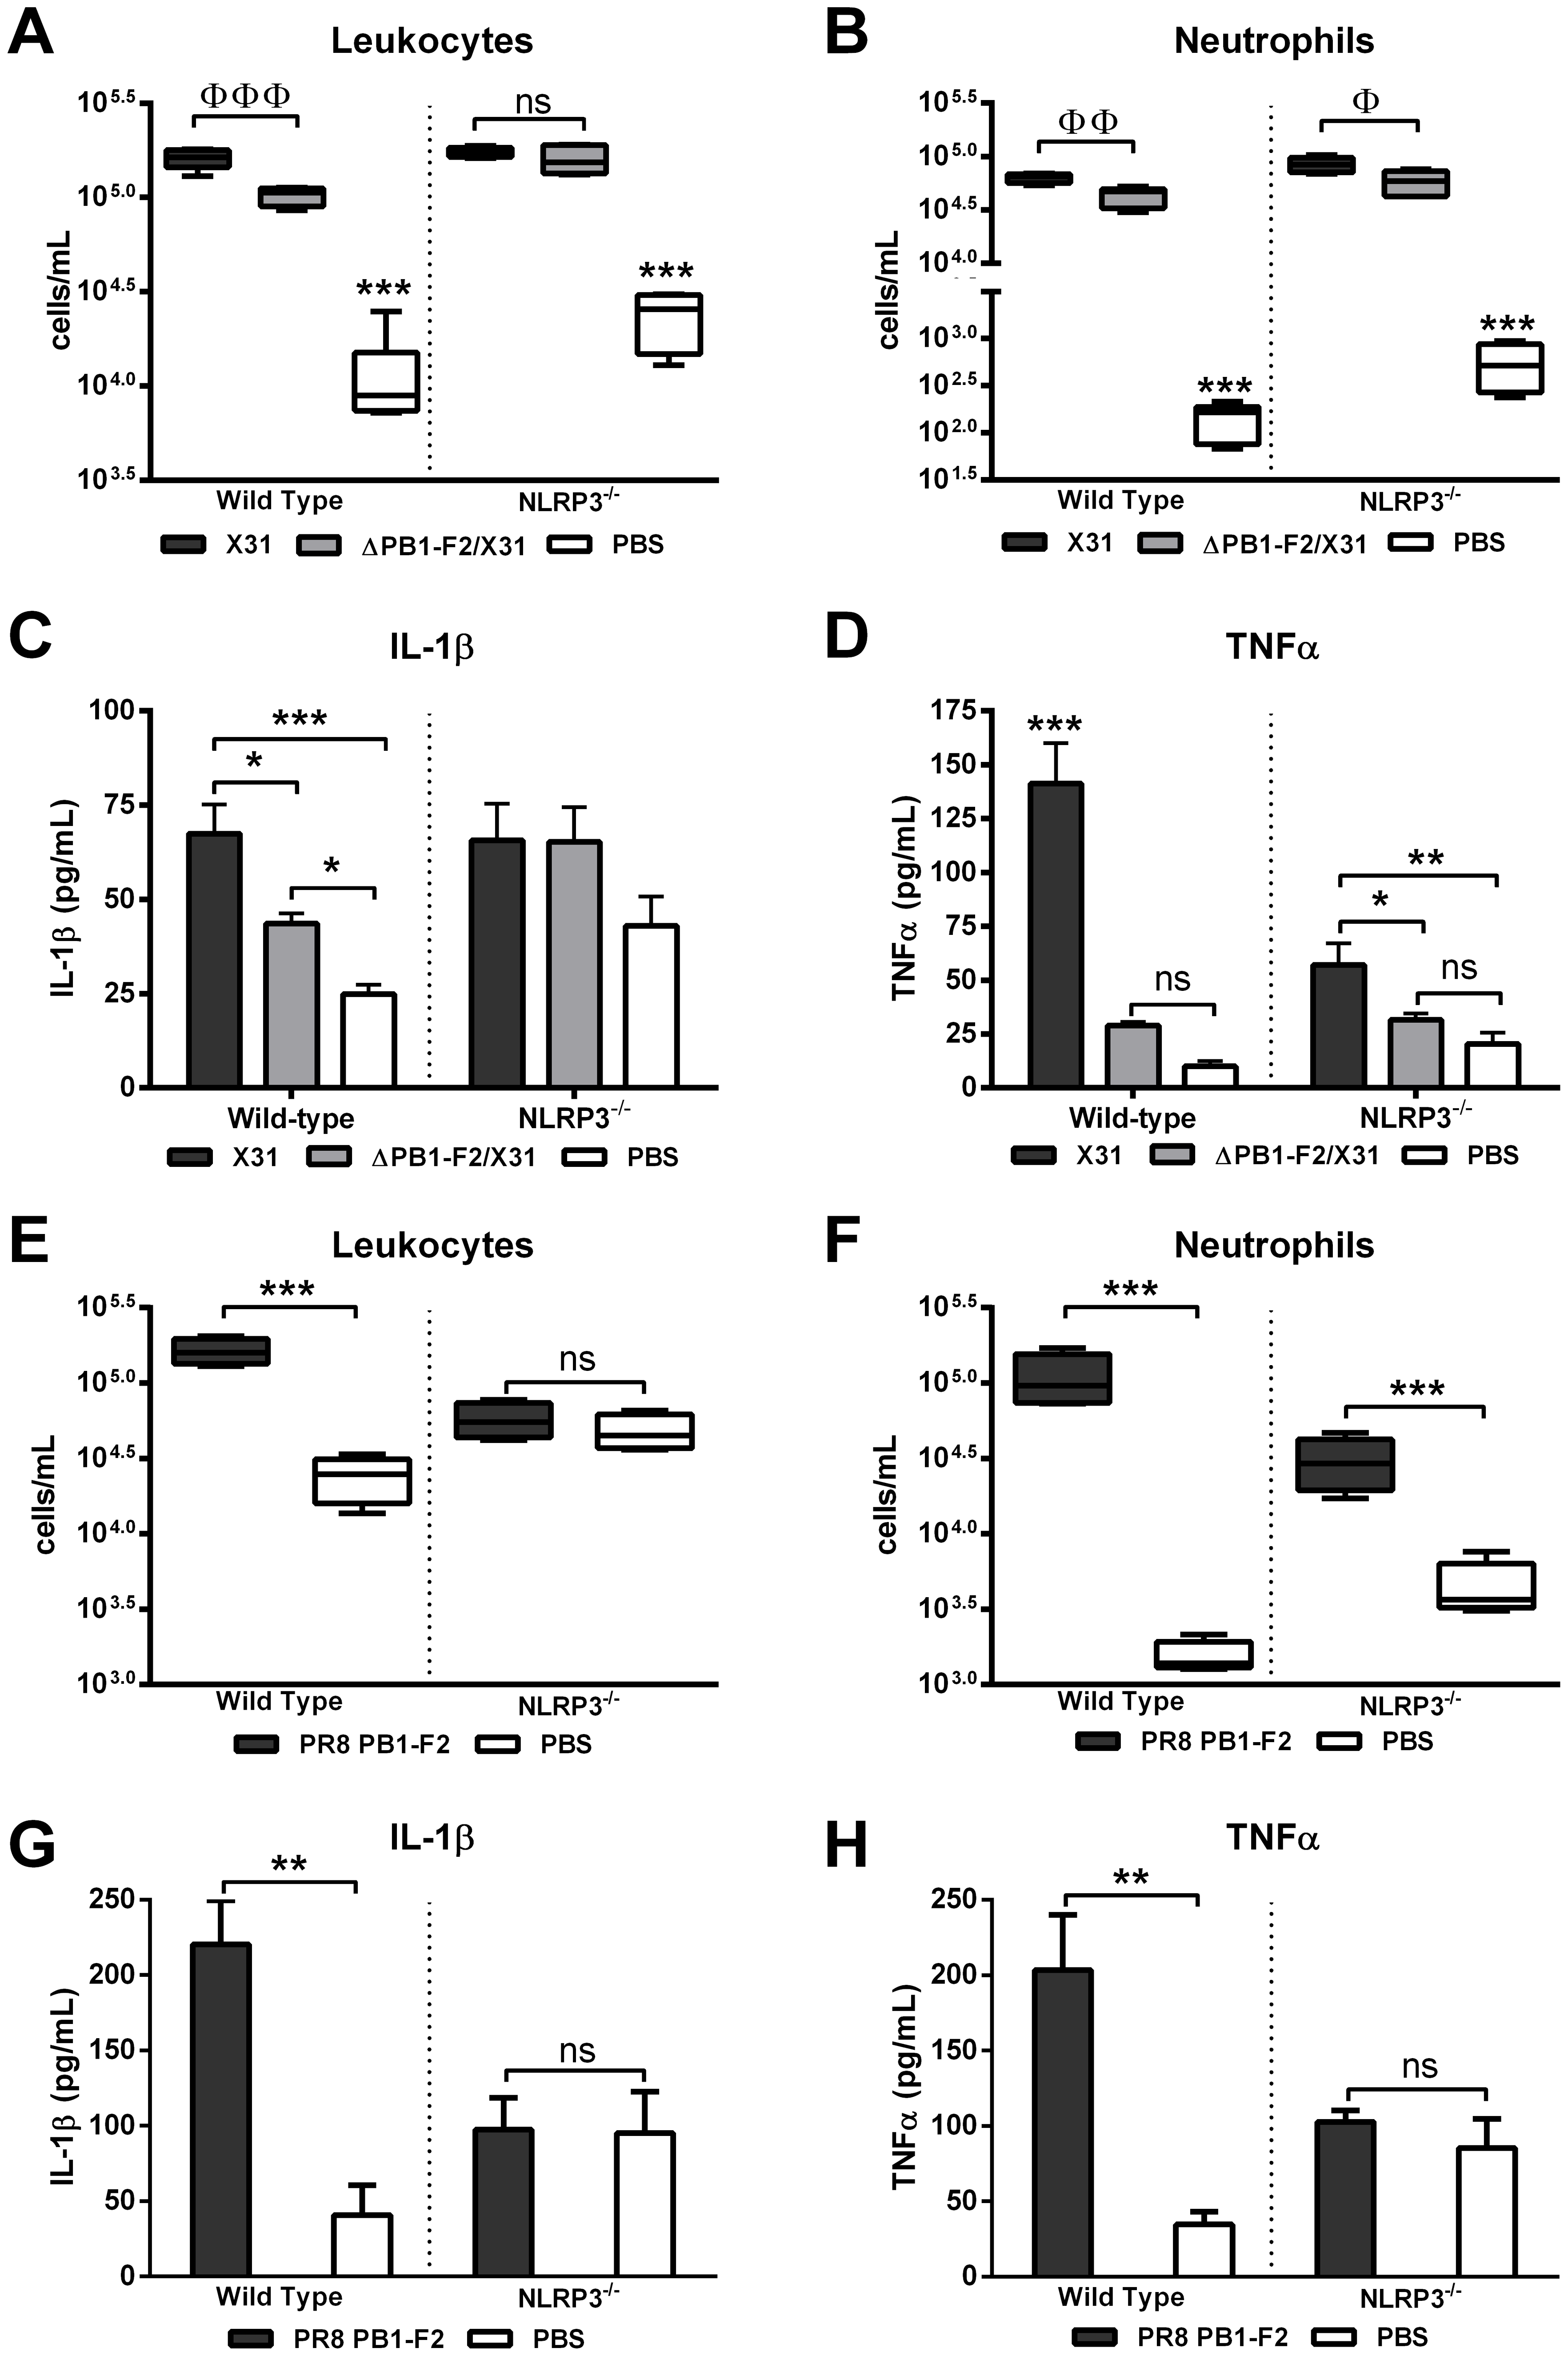 Induction of inflammasome activation by PR8 PB1-F2 peptide occurs rapidly <i>in vivo</i>.